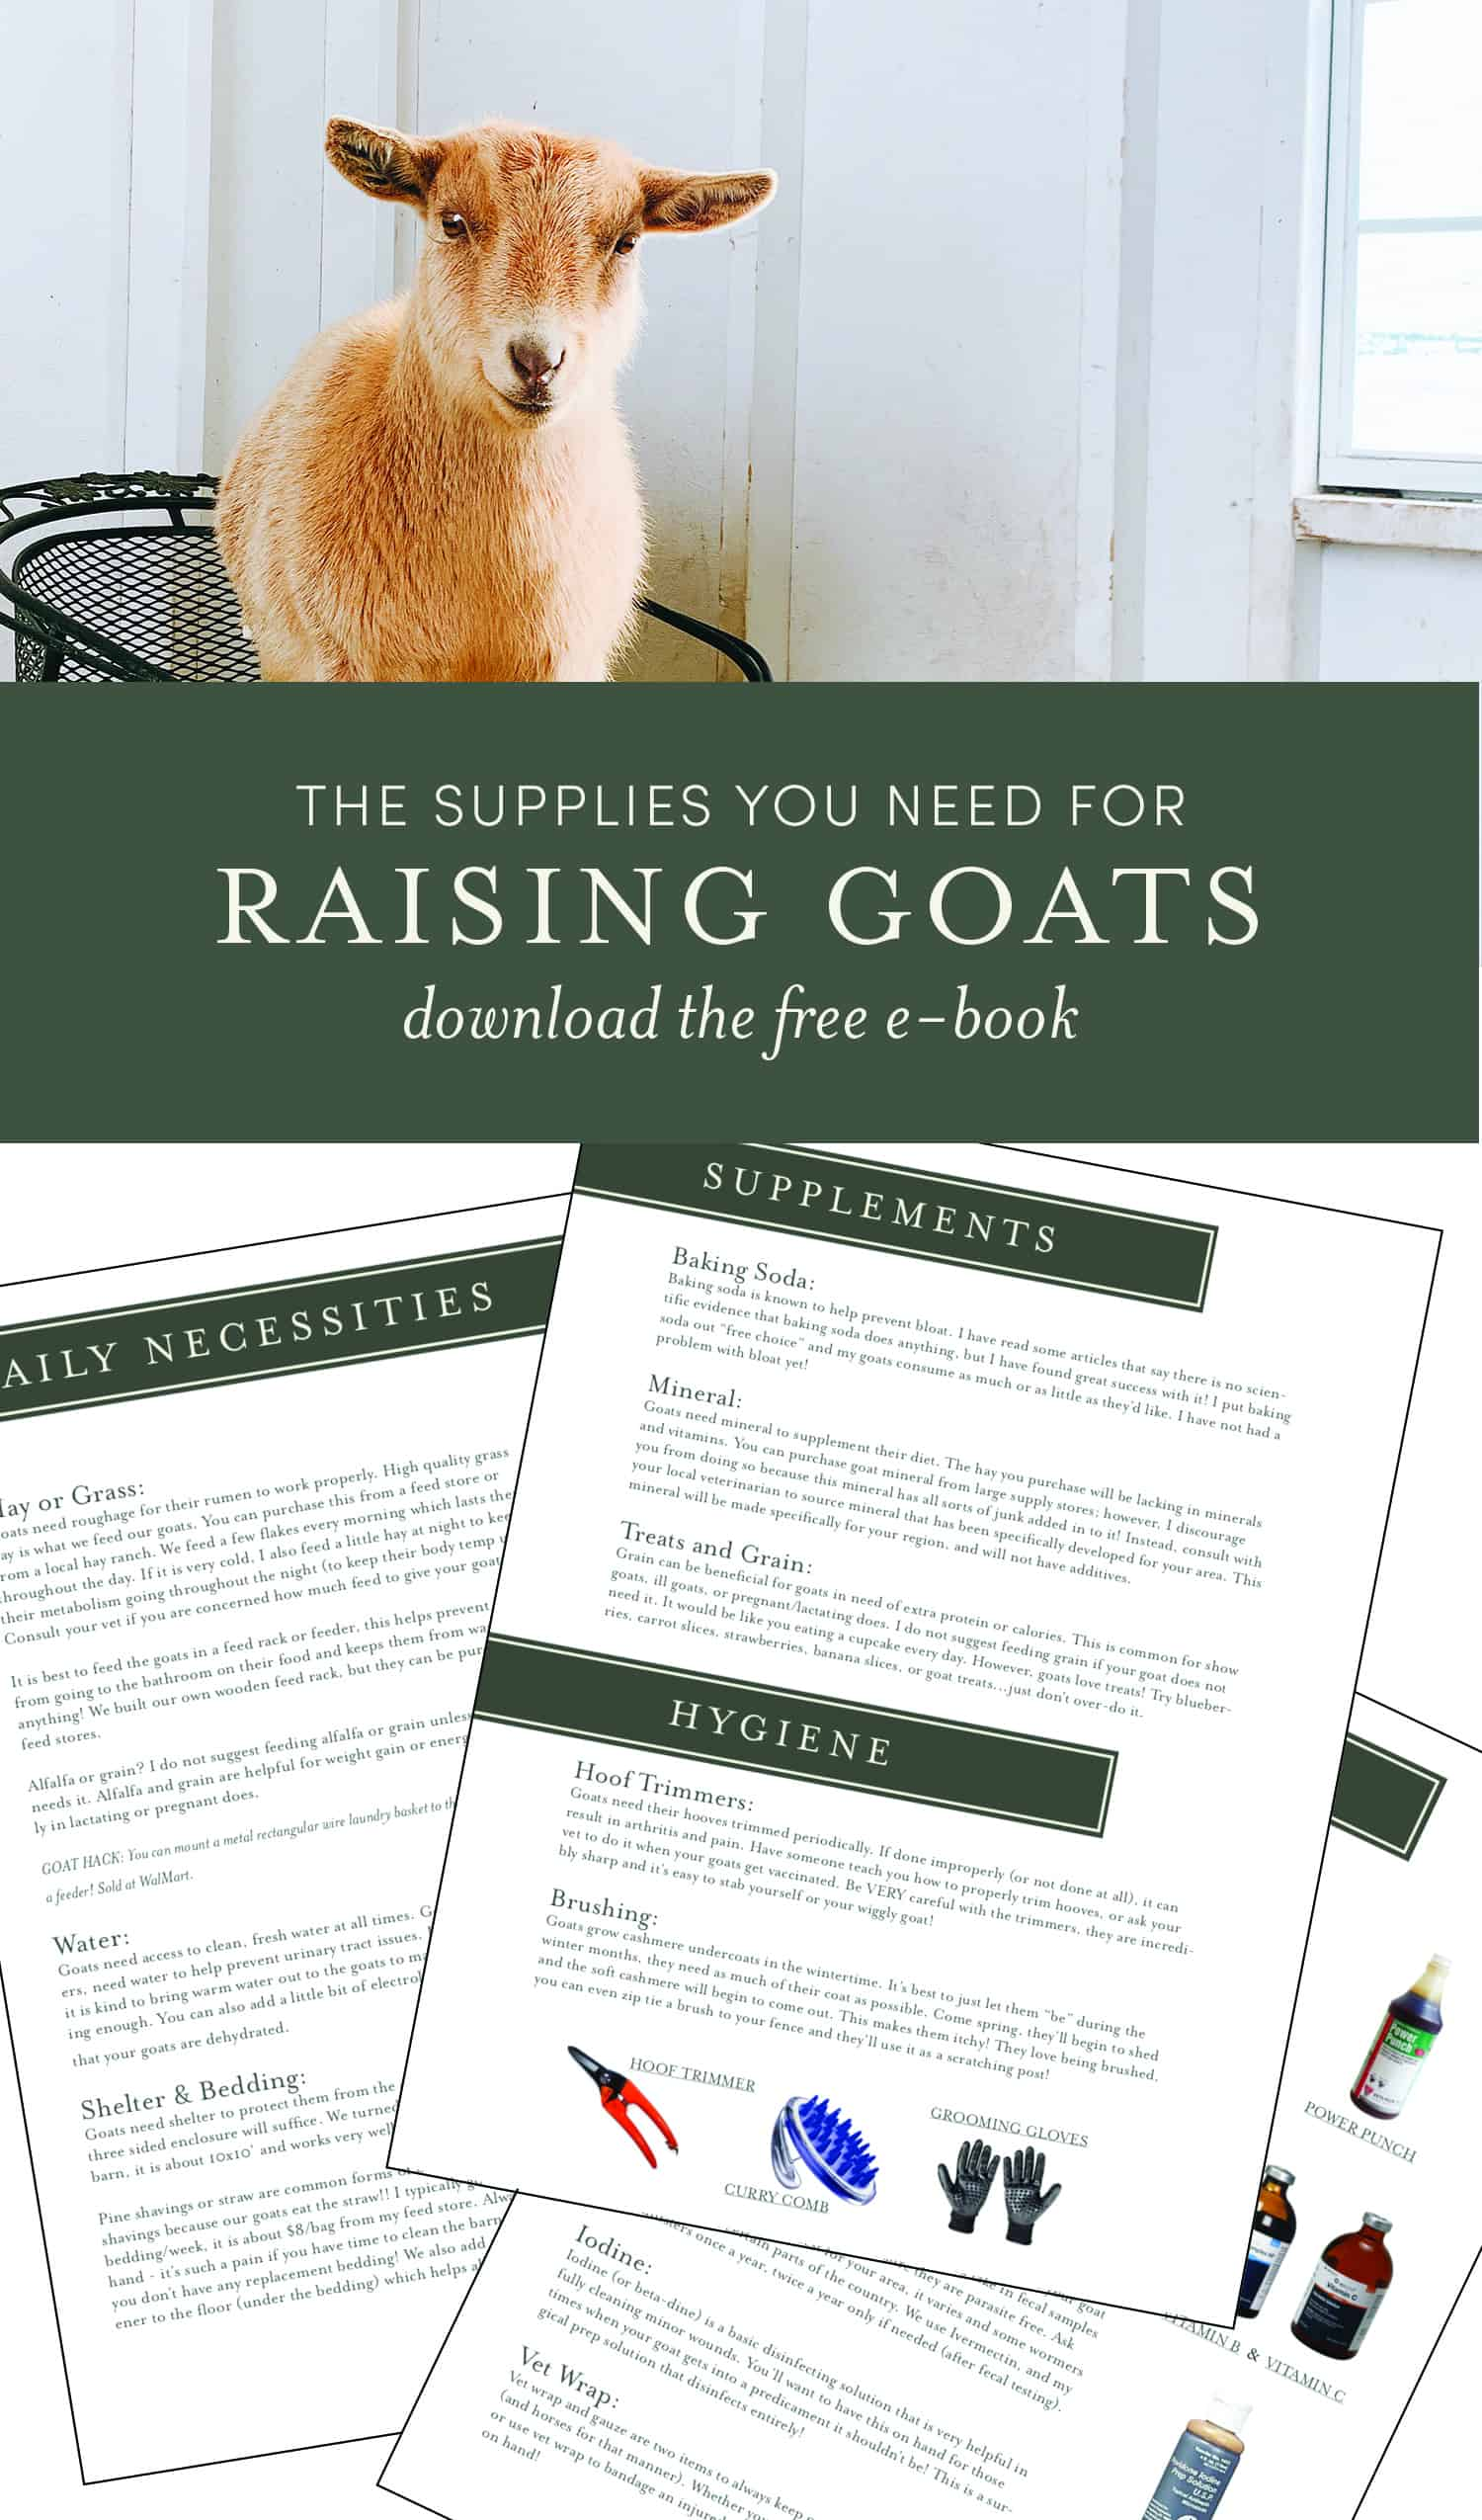 Raising goats is so much easier when you have the right supplies! These are some of the supplies I use to help keep my goats healthy and happy!